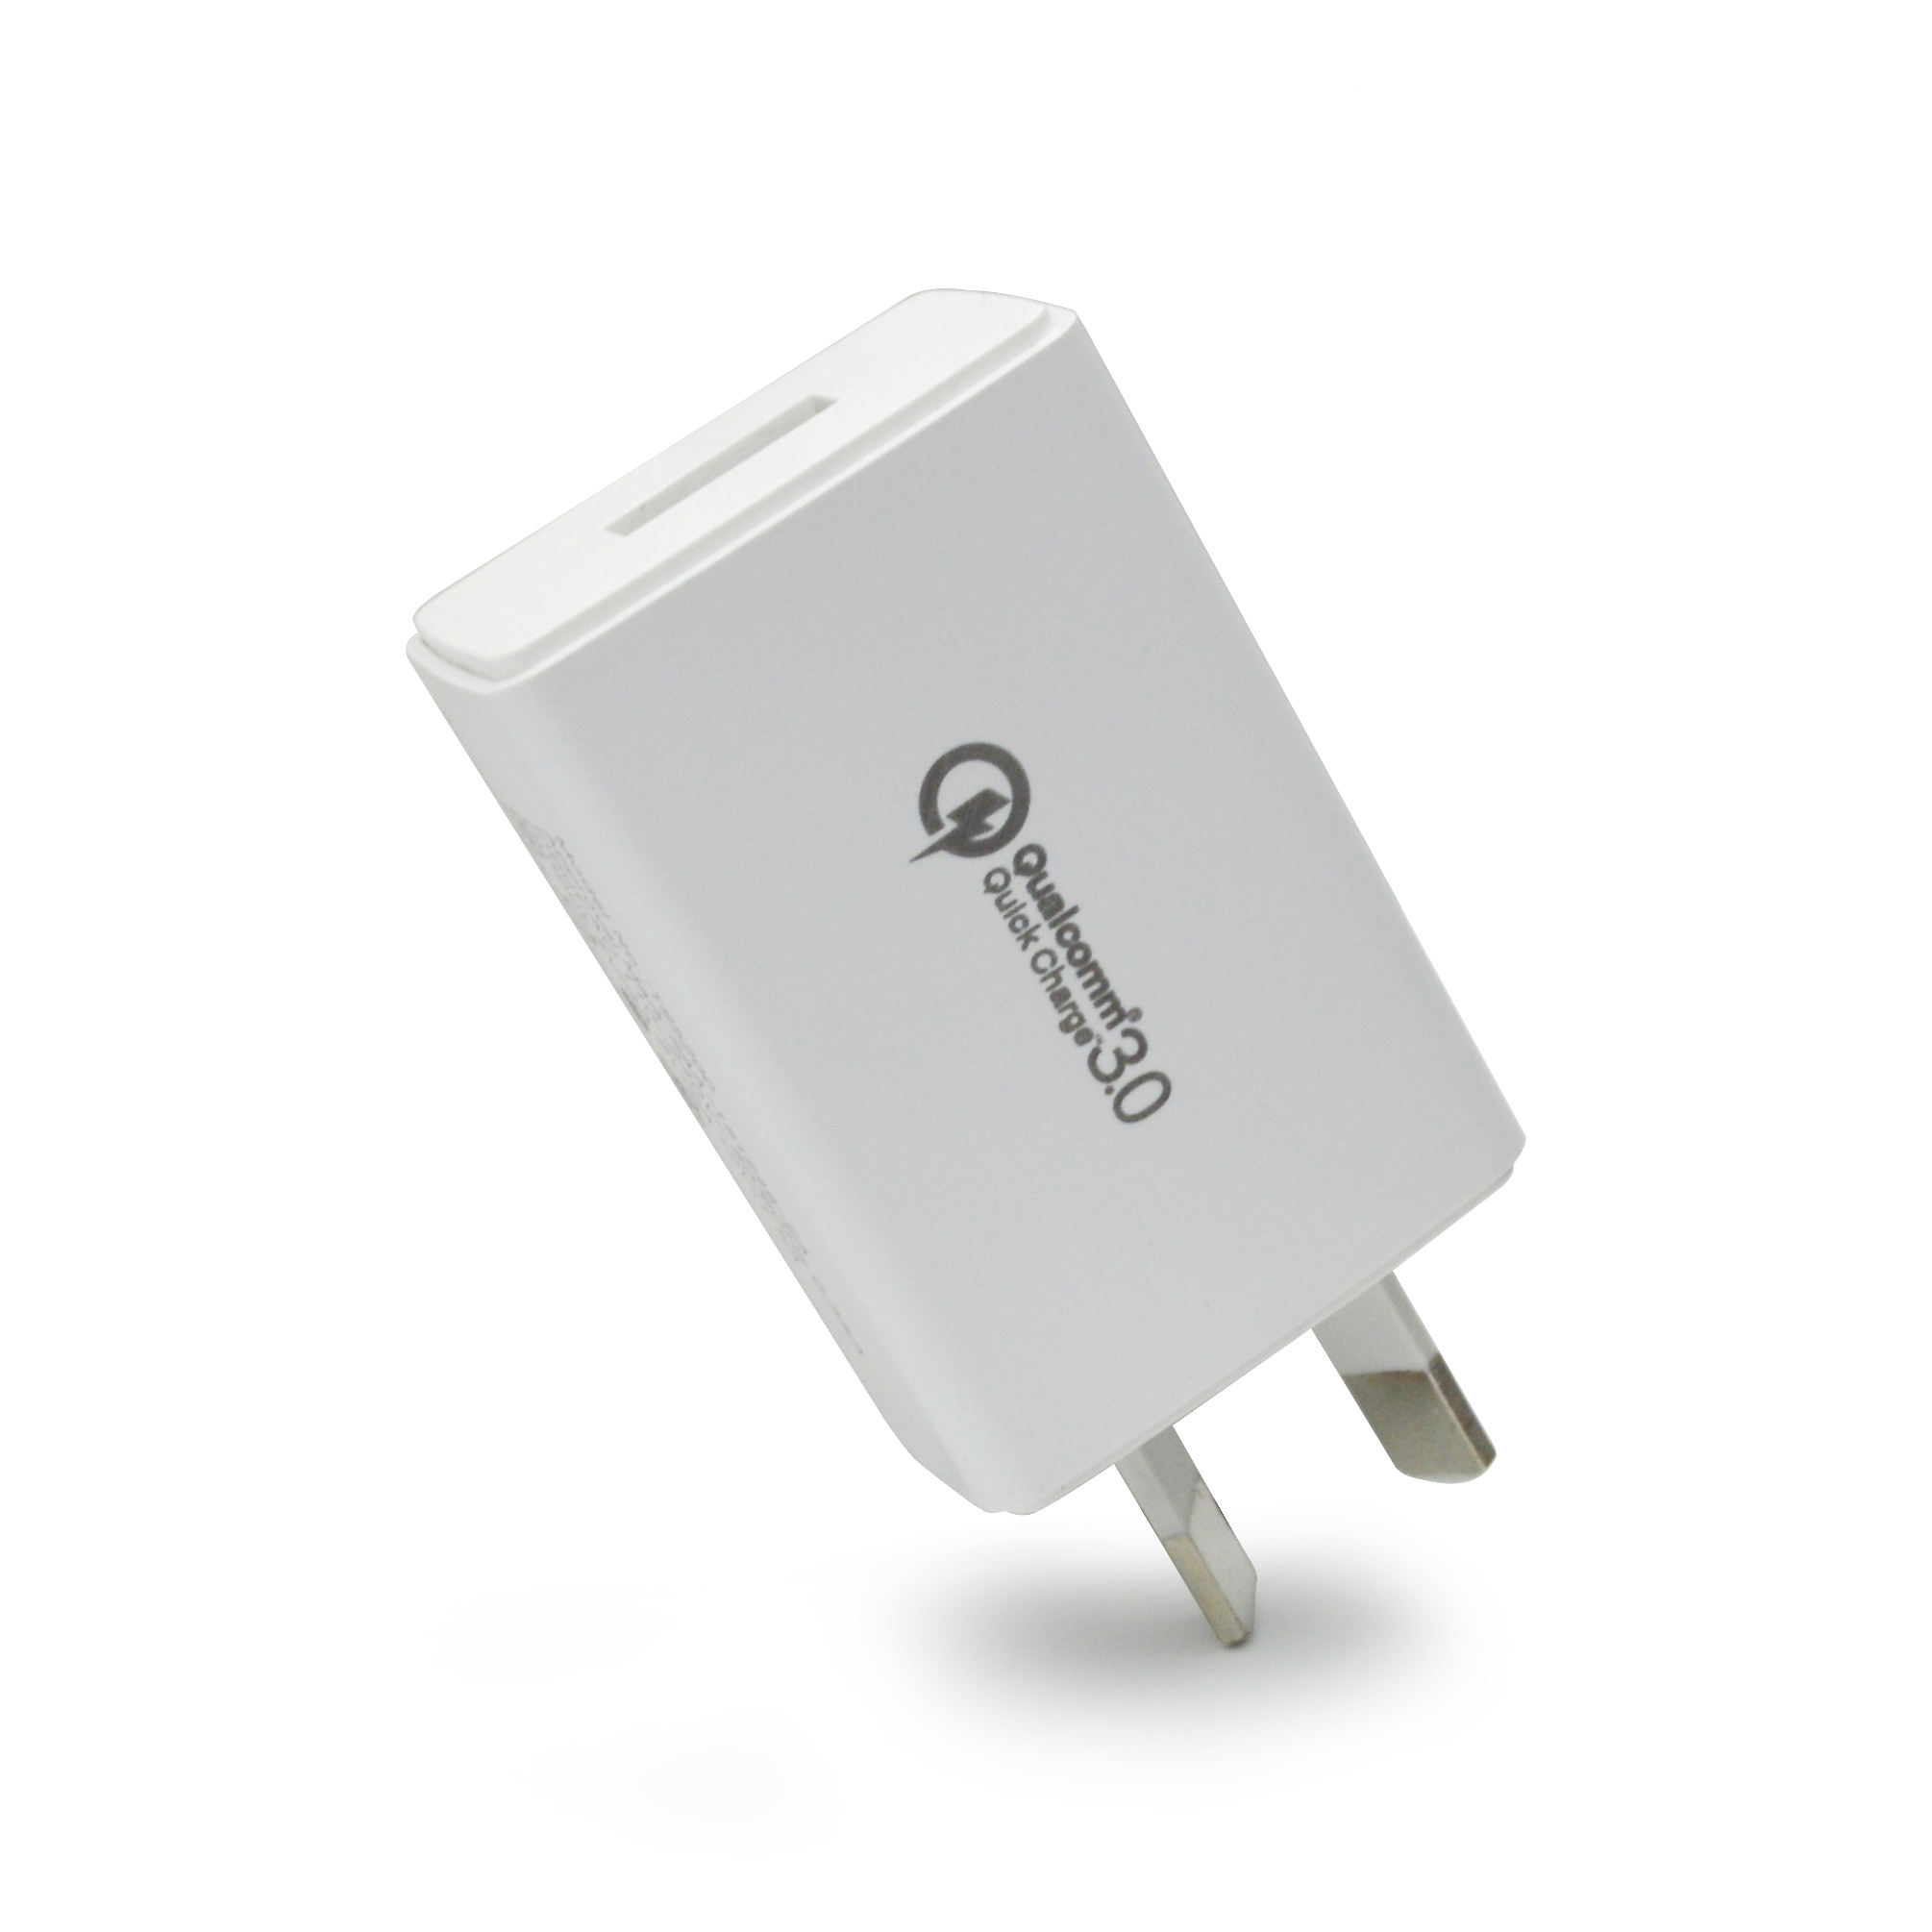 AU power plug qualcomm 3.0 quick charge 18W DC 5V 3A 9V 2A 12V 1.5A QC 3.0 USB Wall Charger SAA